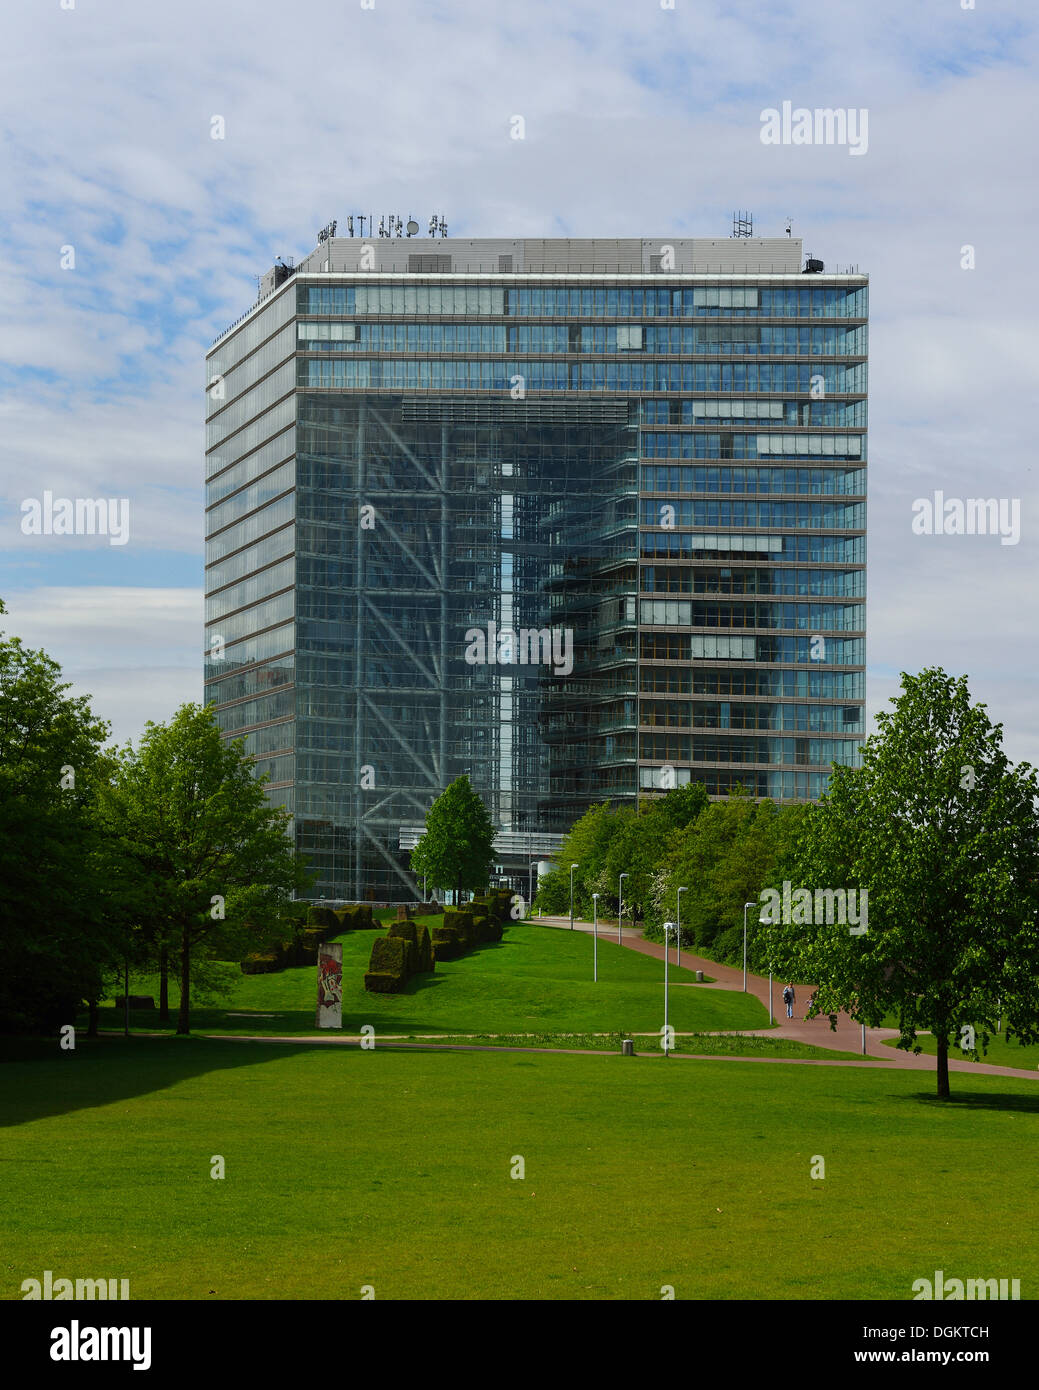 Imposing Stadttor Duesseldorf building, a modern office building close to the Media Harbour, North Rhine-Westphalia - Stock Image